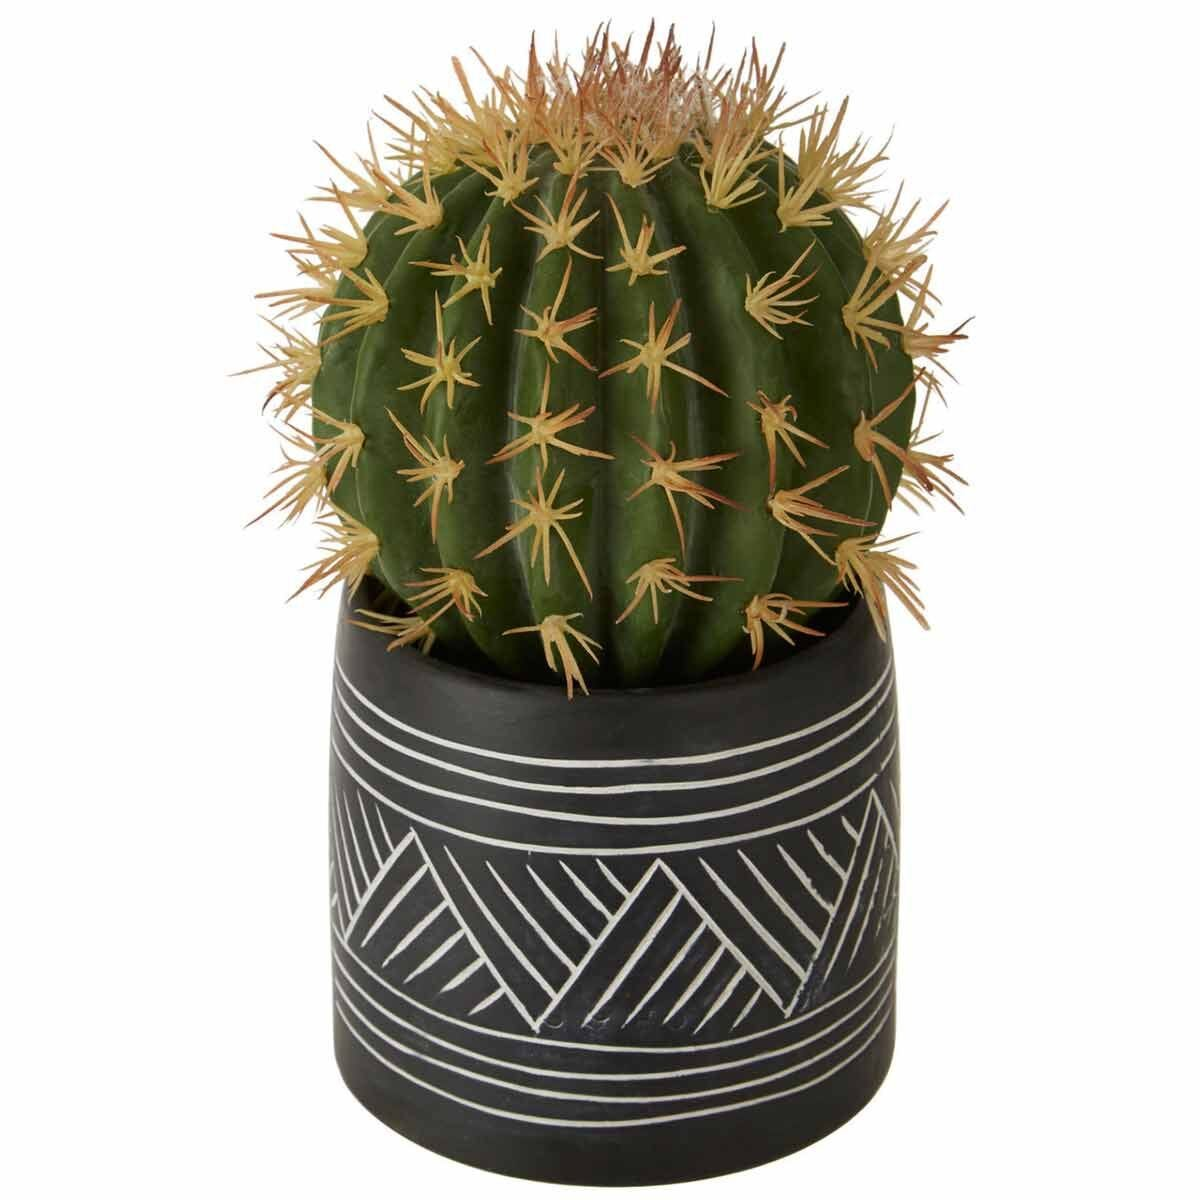 Interiors by PH Faux Cactus in Cement Pot